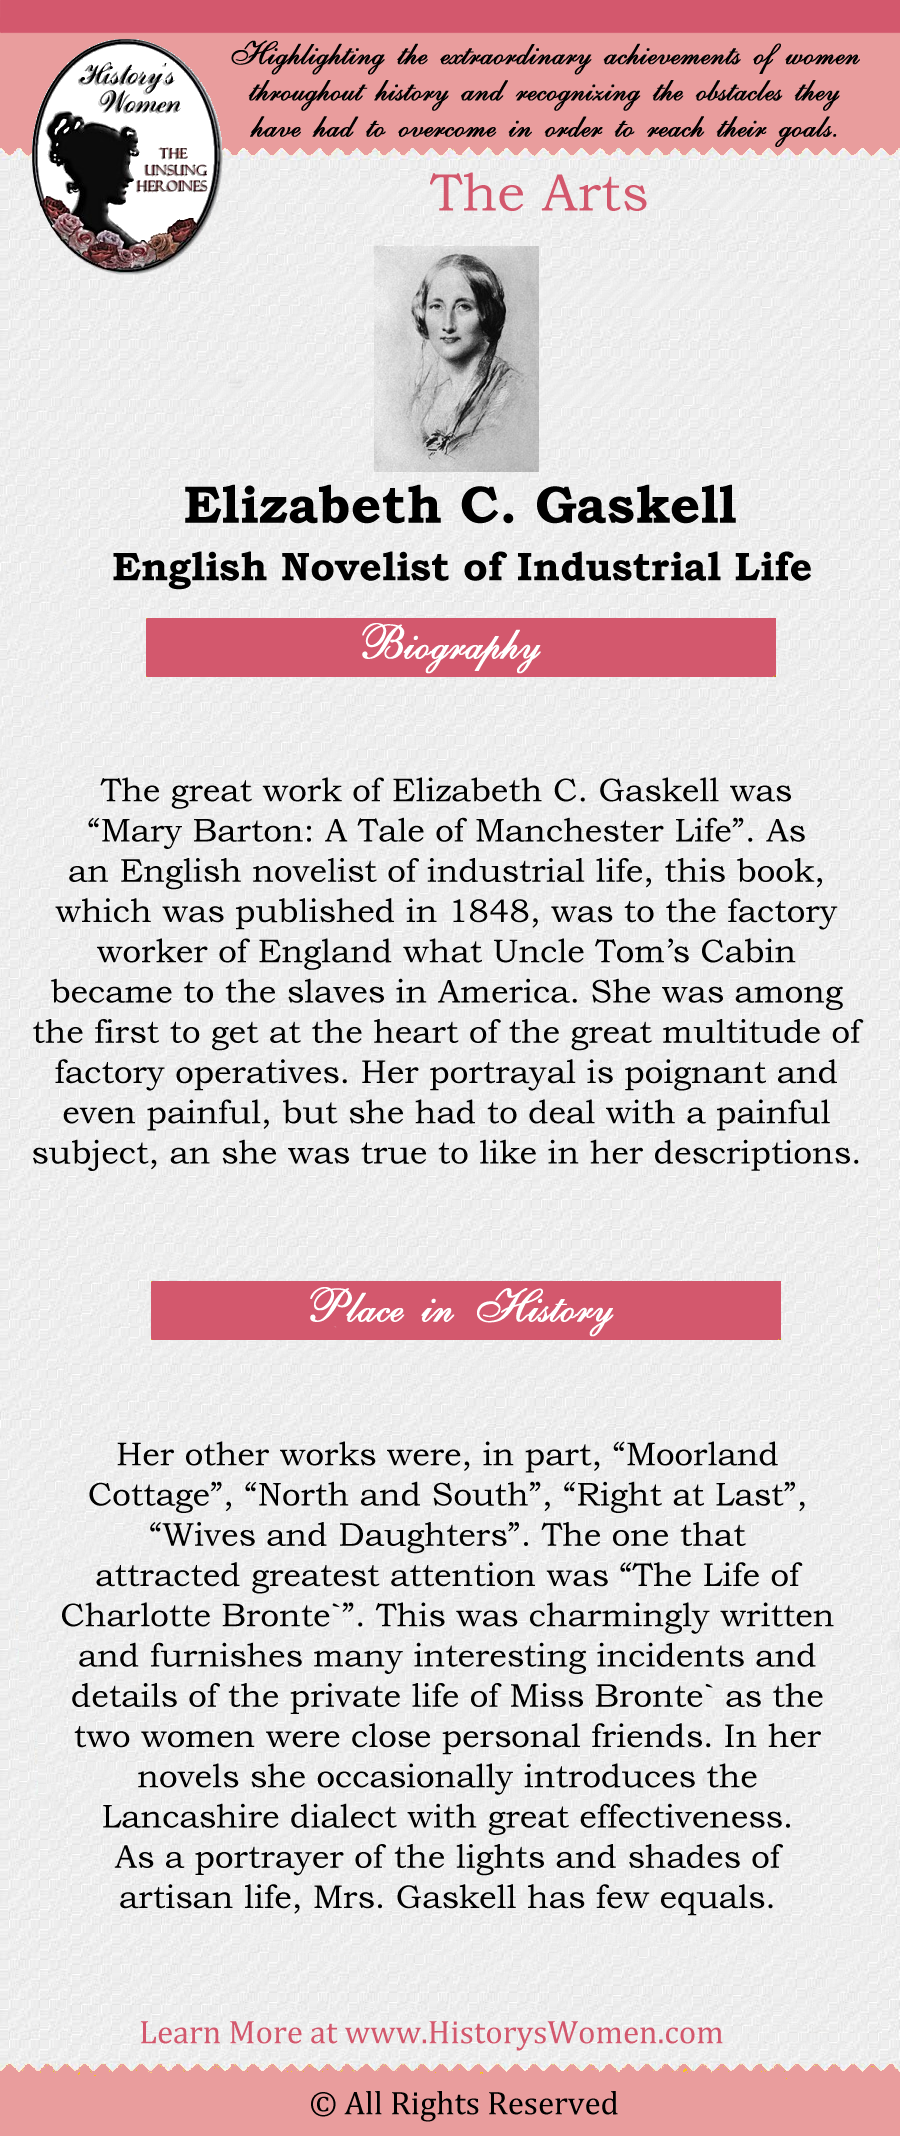 Complete article about Elizabeth C. Gaskell found at HistorysWomen.com!